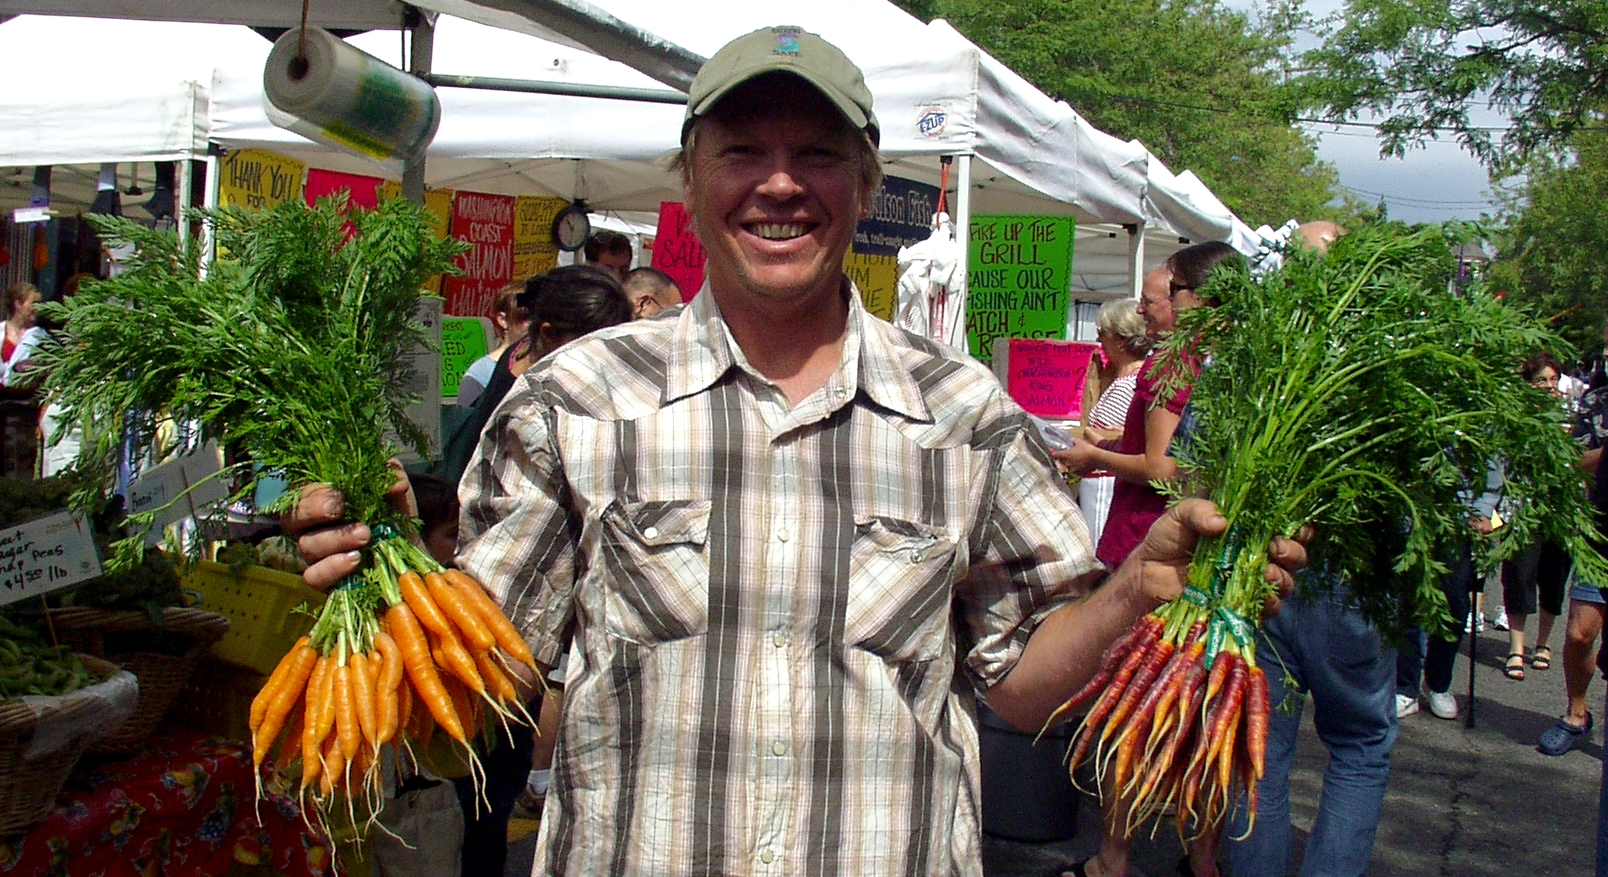 Oxbow Farm's Luke Woodward proudly showing off his prized carrots. Photo copyright 2009 by Zachary D. Lyons.